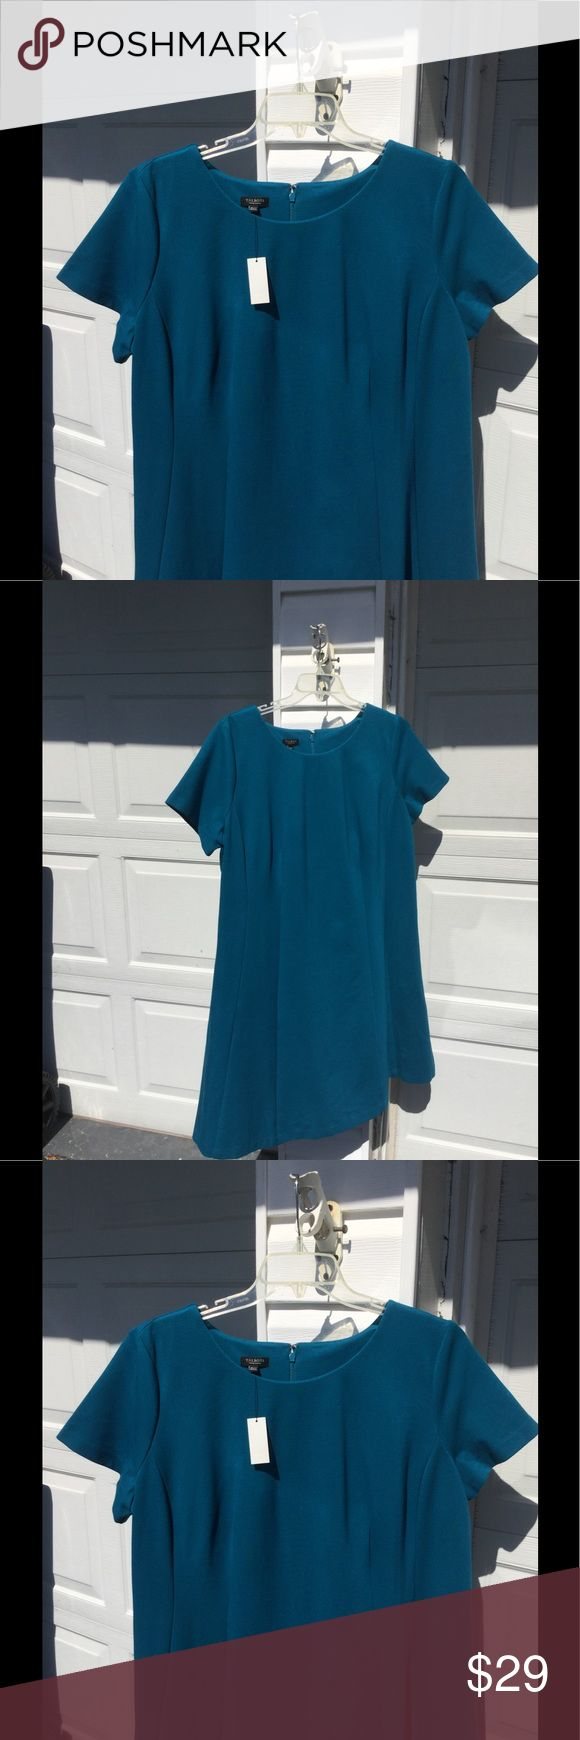 "NWT Talbots Classic Teal Blue Dress 18W Petite L So cute and classic! NWT Talbots Teal Blue short sleeve dress, 18W Petite Length. Bust 48"", length 38"". This will take you anywhere! Originally $149. Enjoy! Talbots Dresses Midi"